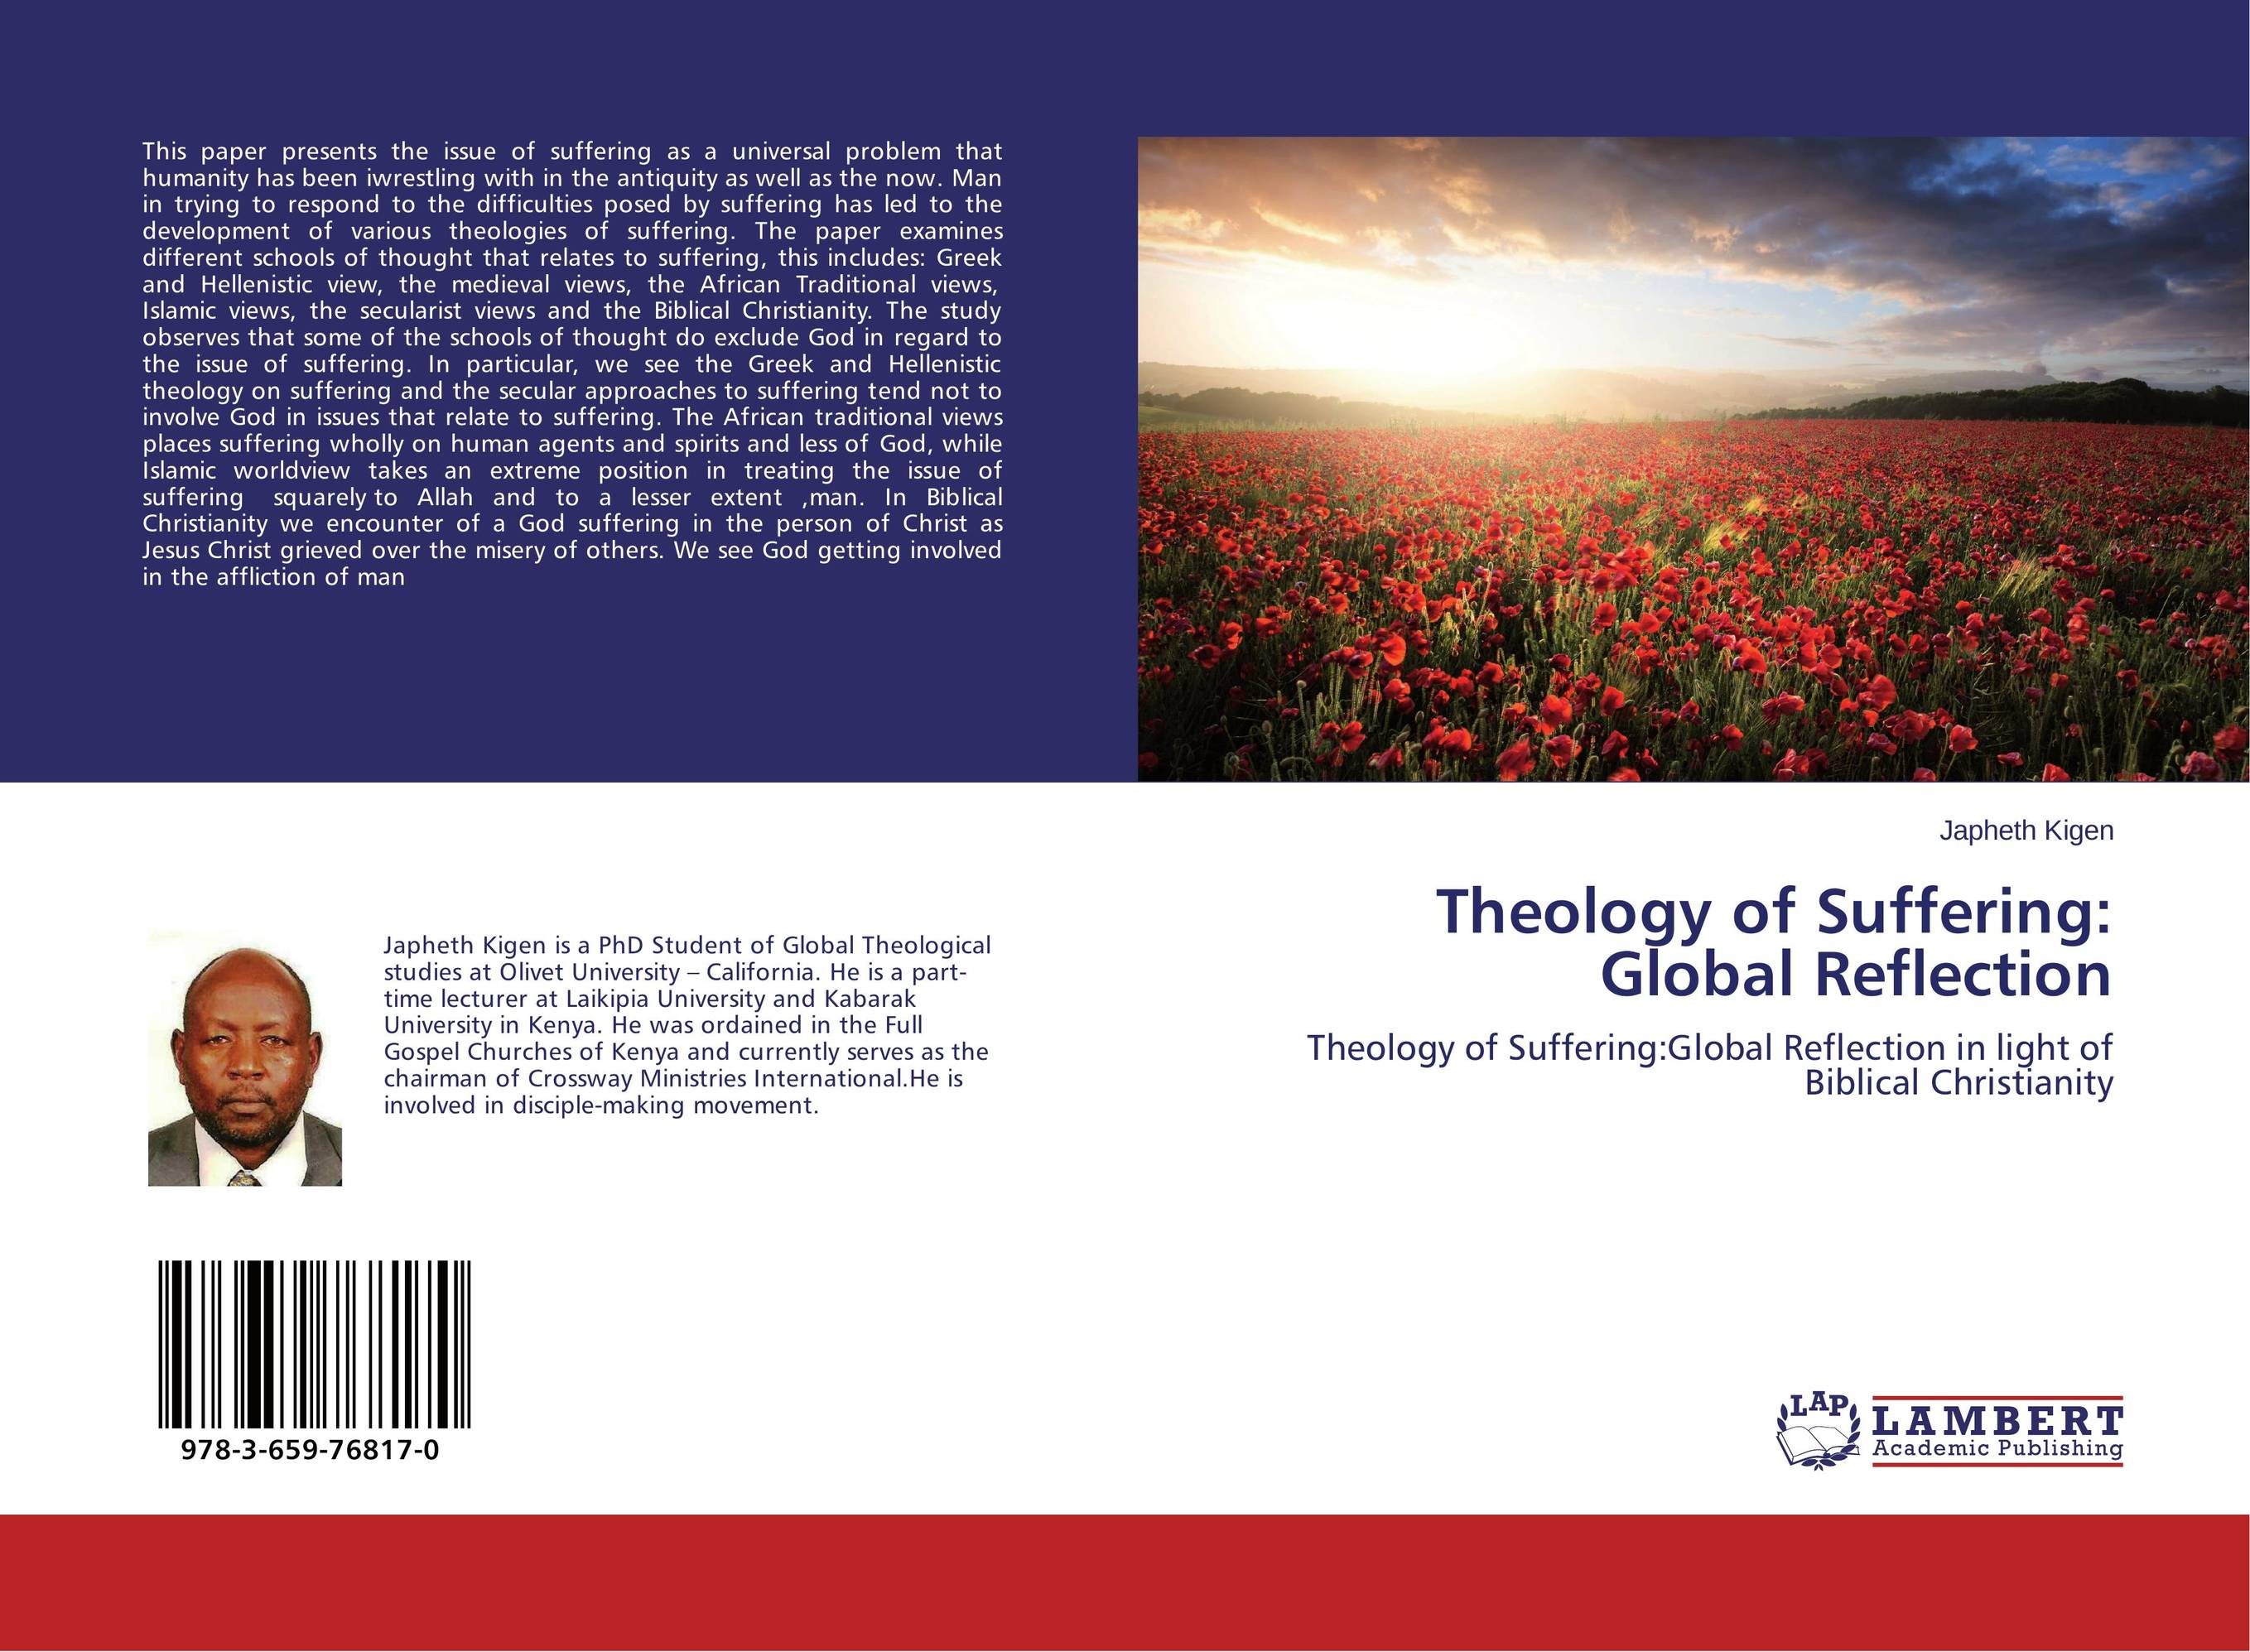 Theology of Suffering: Global Reflection sola scriptura benedict xvi s theology of the word of god